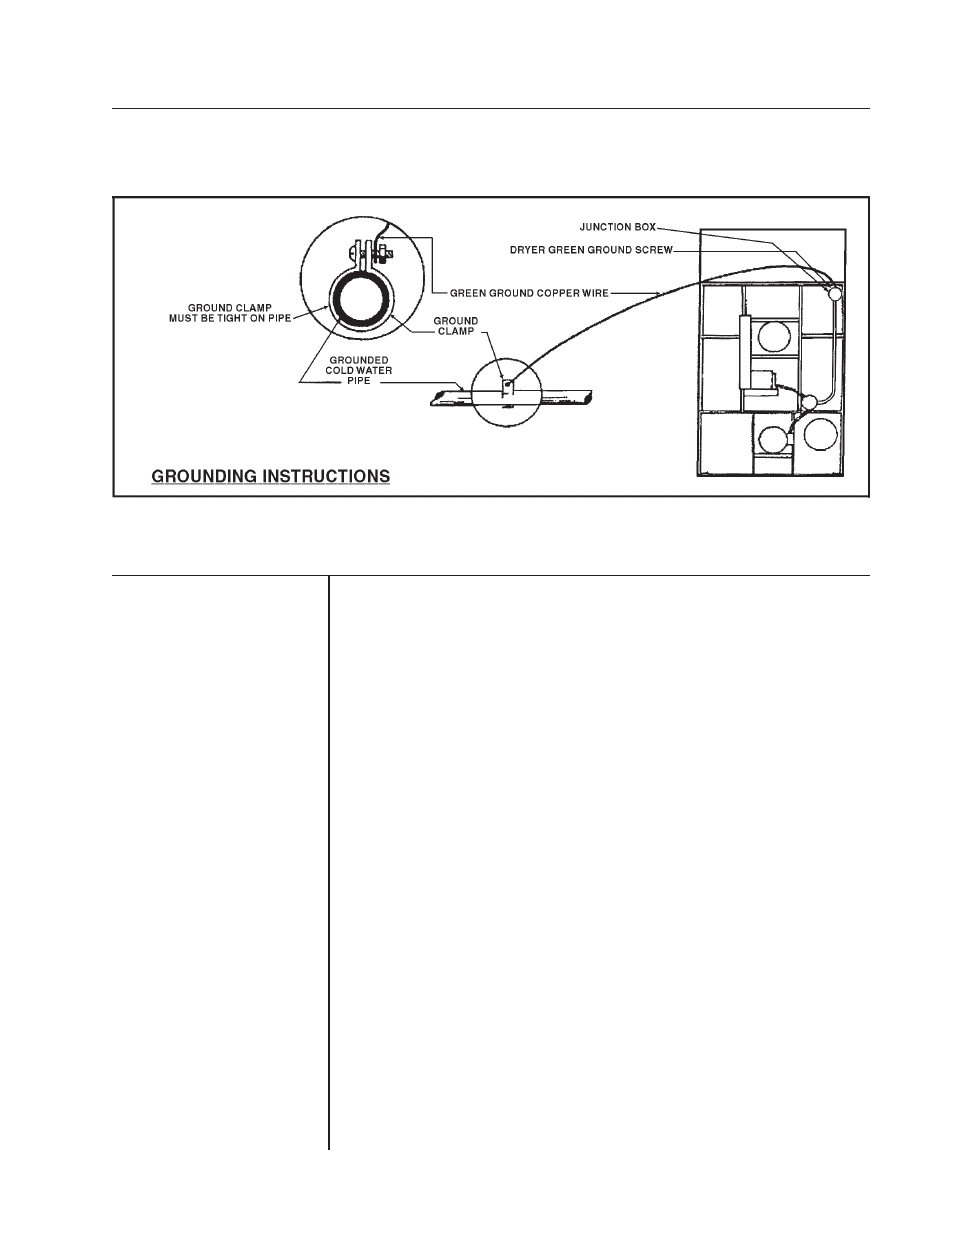 Cissell Dryer Wiring Diagram Trusted Schematics Milnor L36ur30 User Manual Page 17 38 Also For L36fd30 Maytag Performa